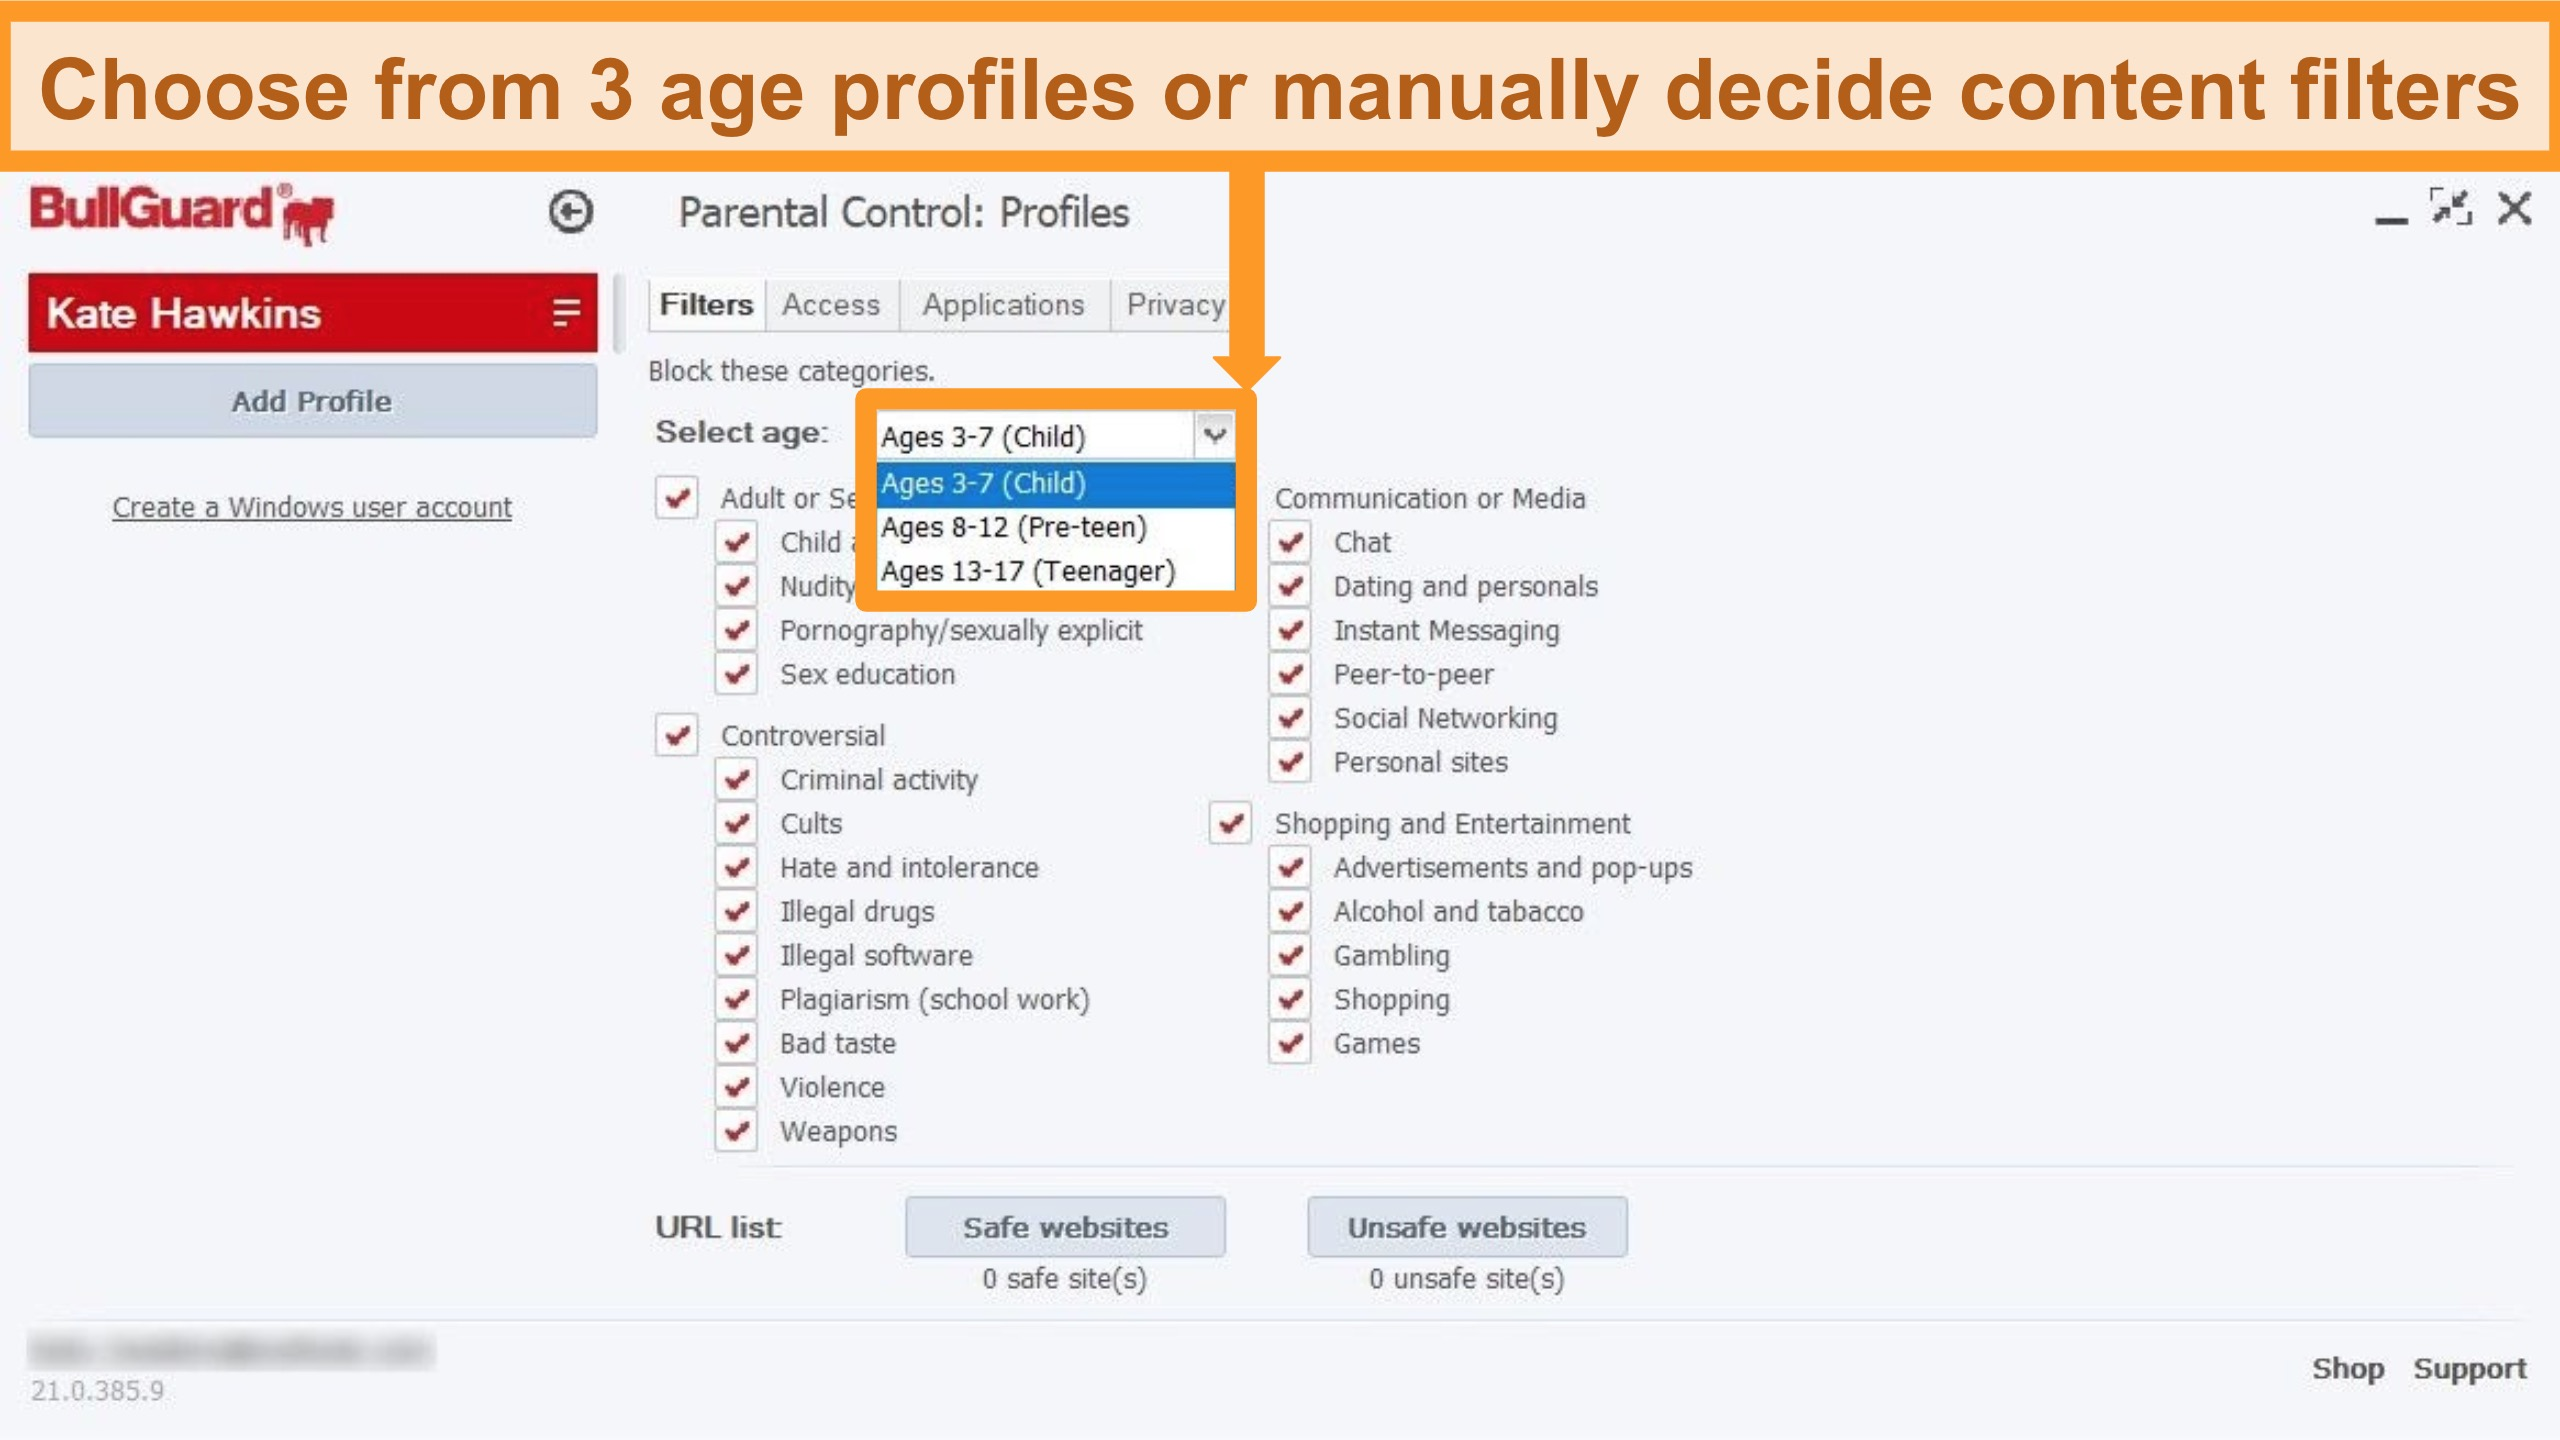 Screenshot of BullGuard's Parental Control settings and profile filters.